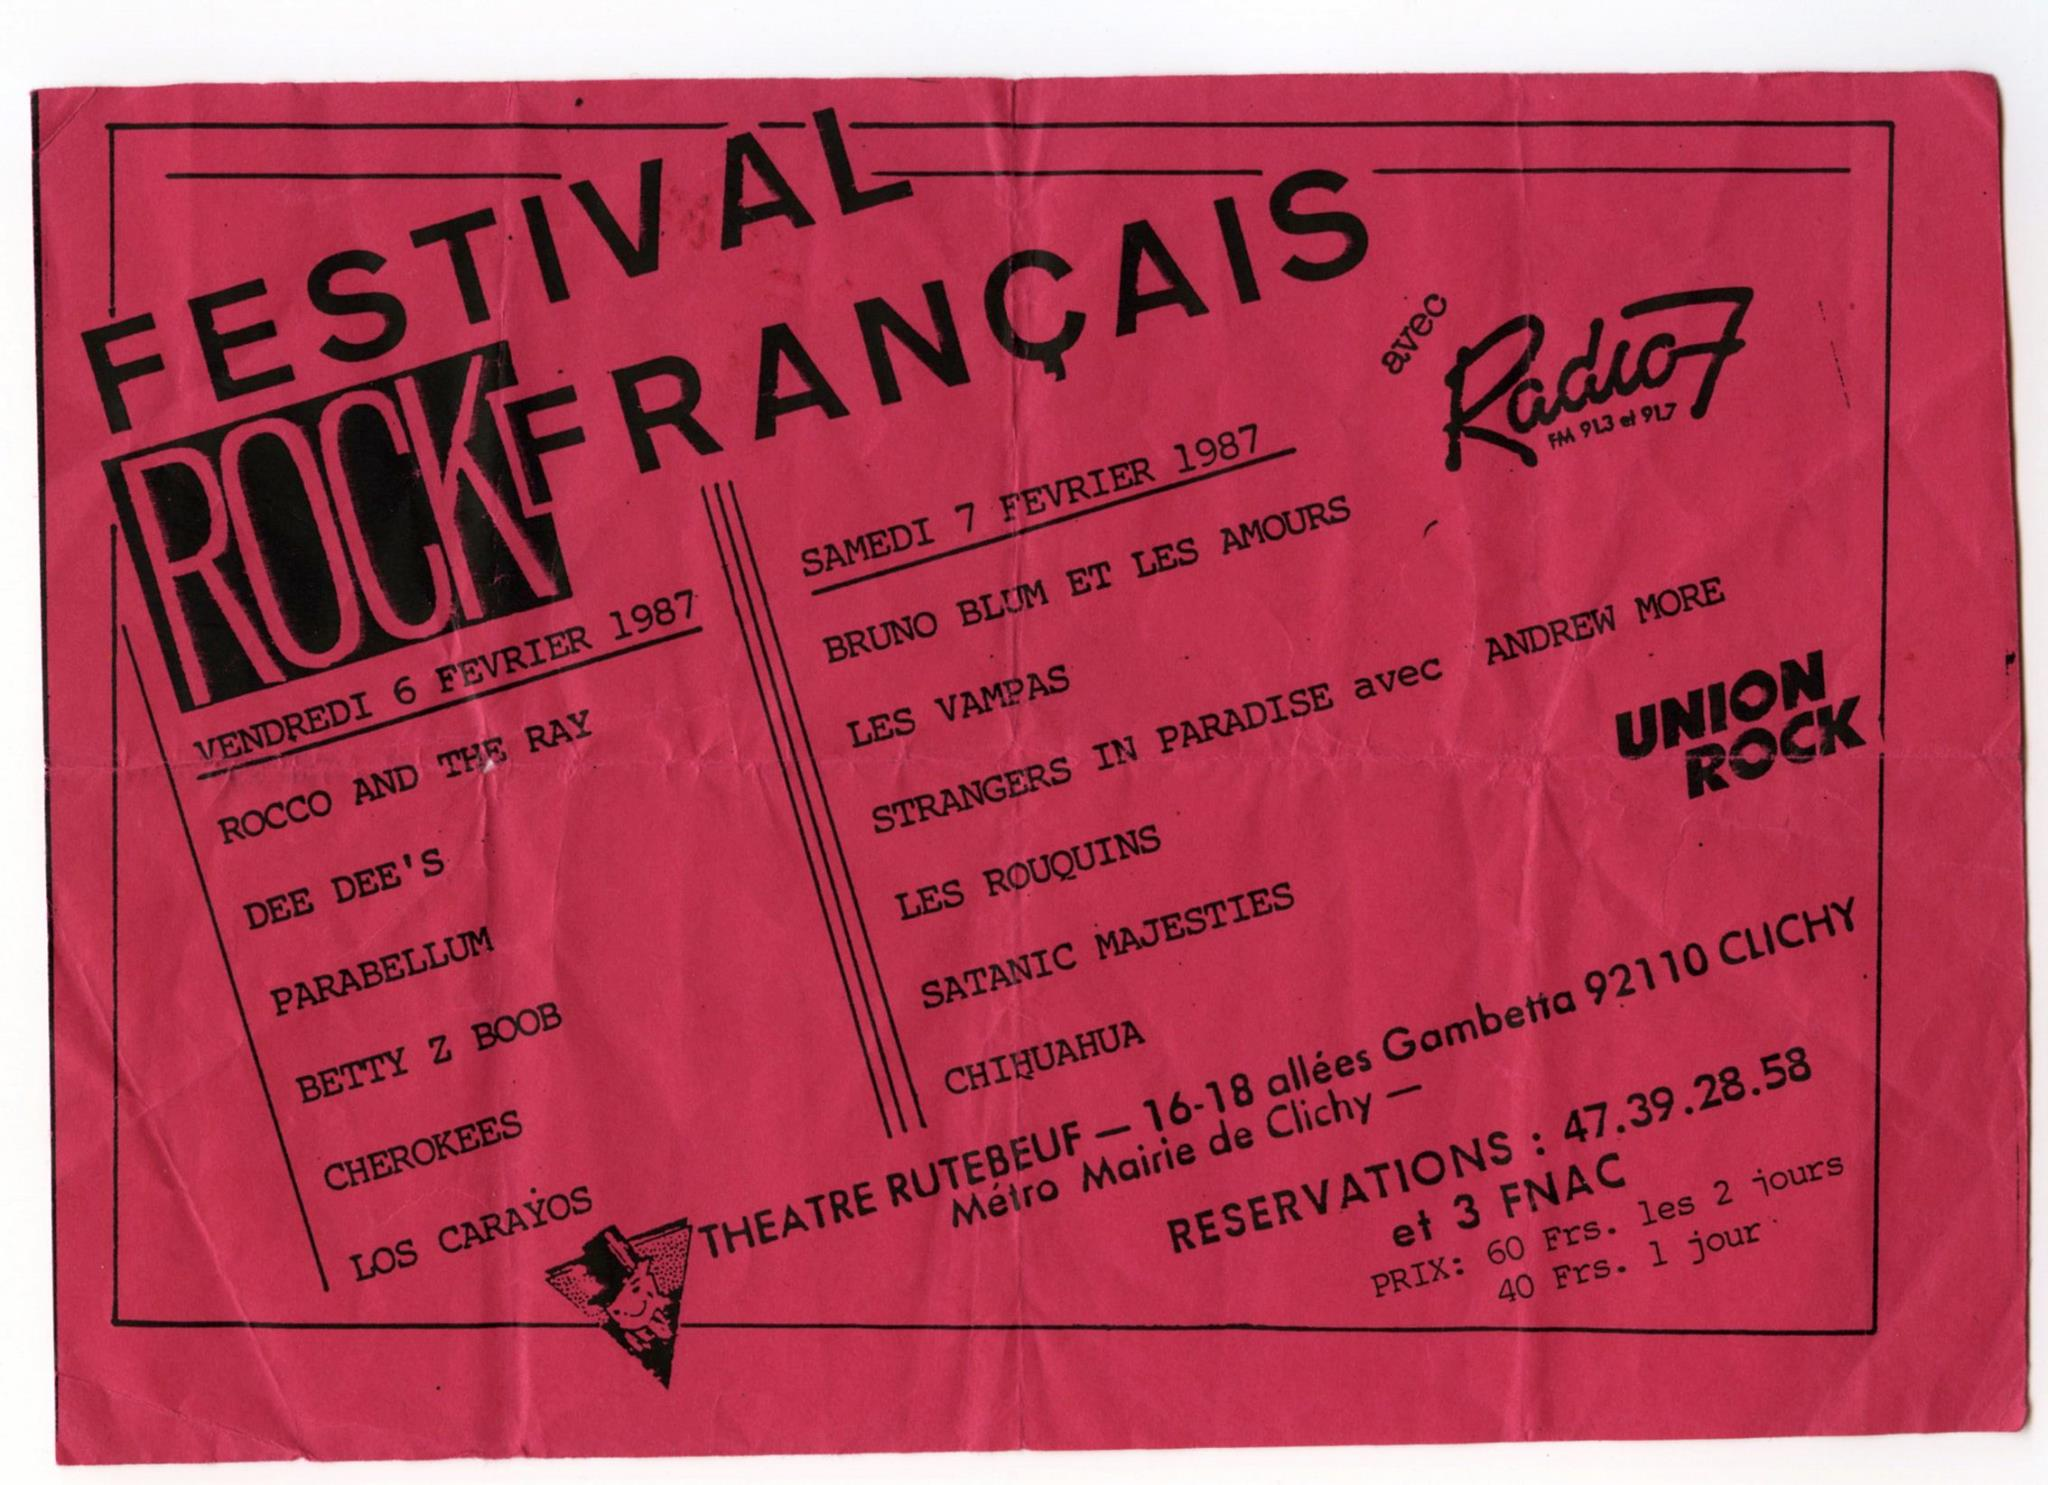 "6 février 1987 Rocco And The Rays, Dee Dee's, Parabellum, Betty Z Boop, Cherokees, Los Caraios à Clichy ""Theatre Rutebeuf"""